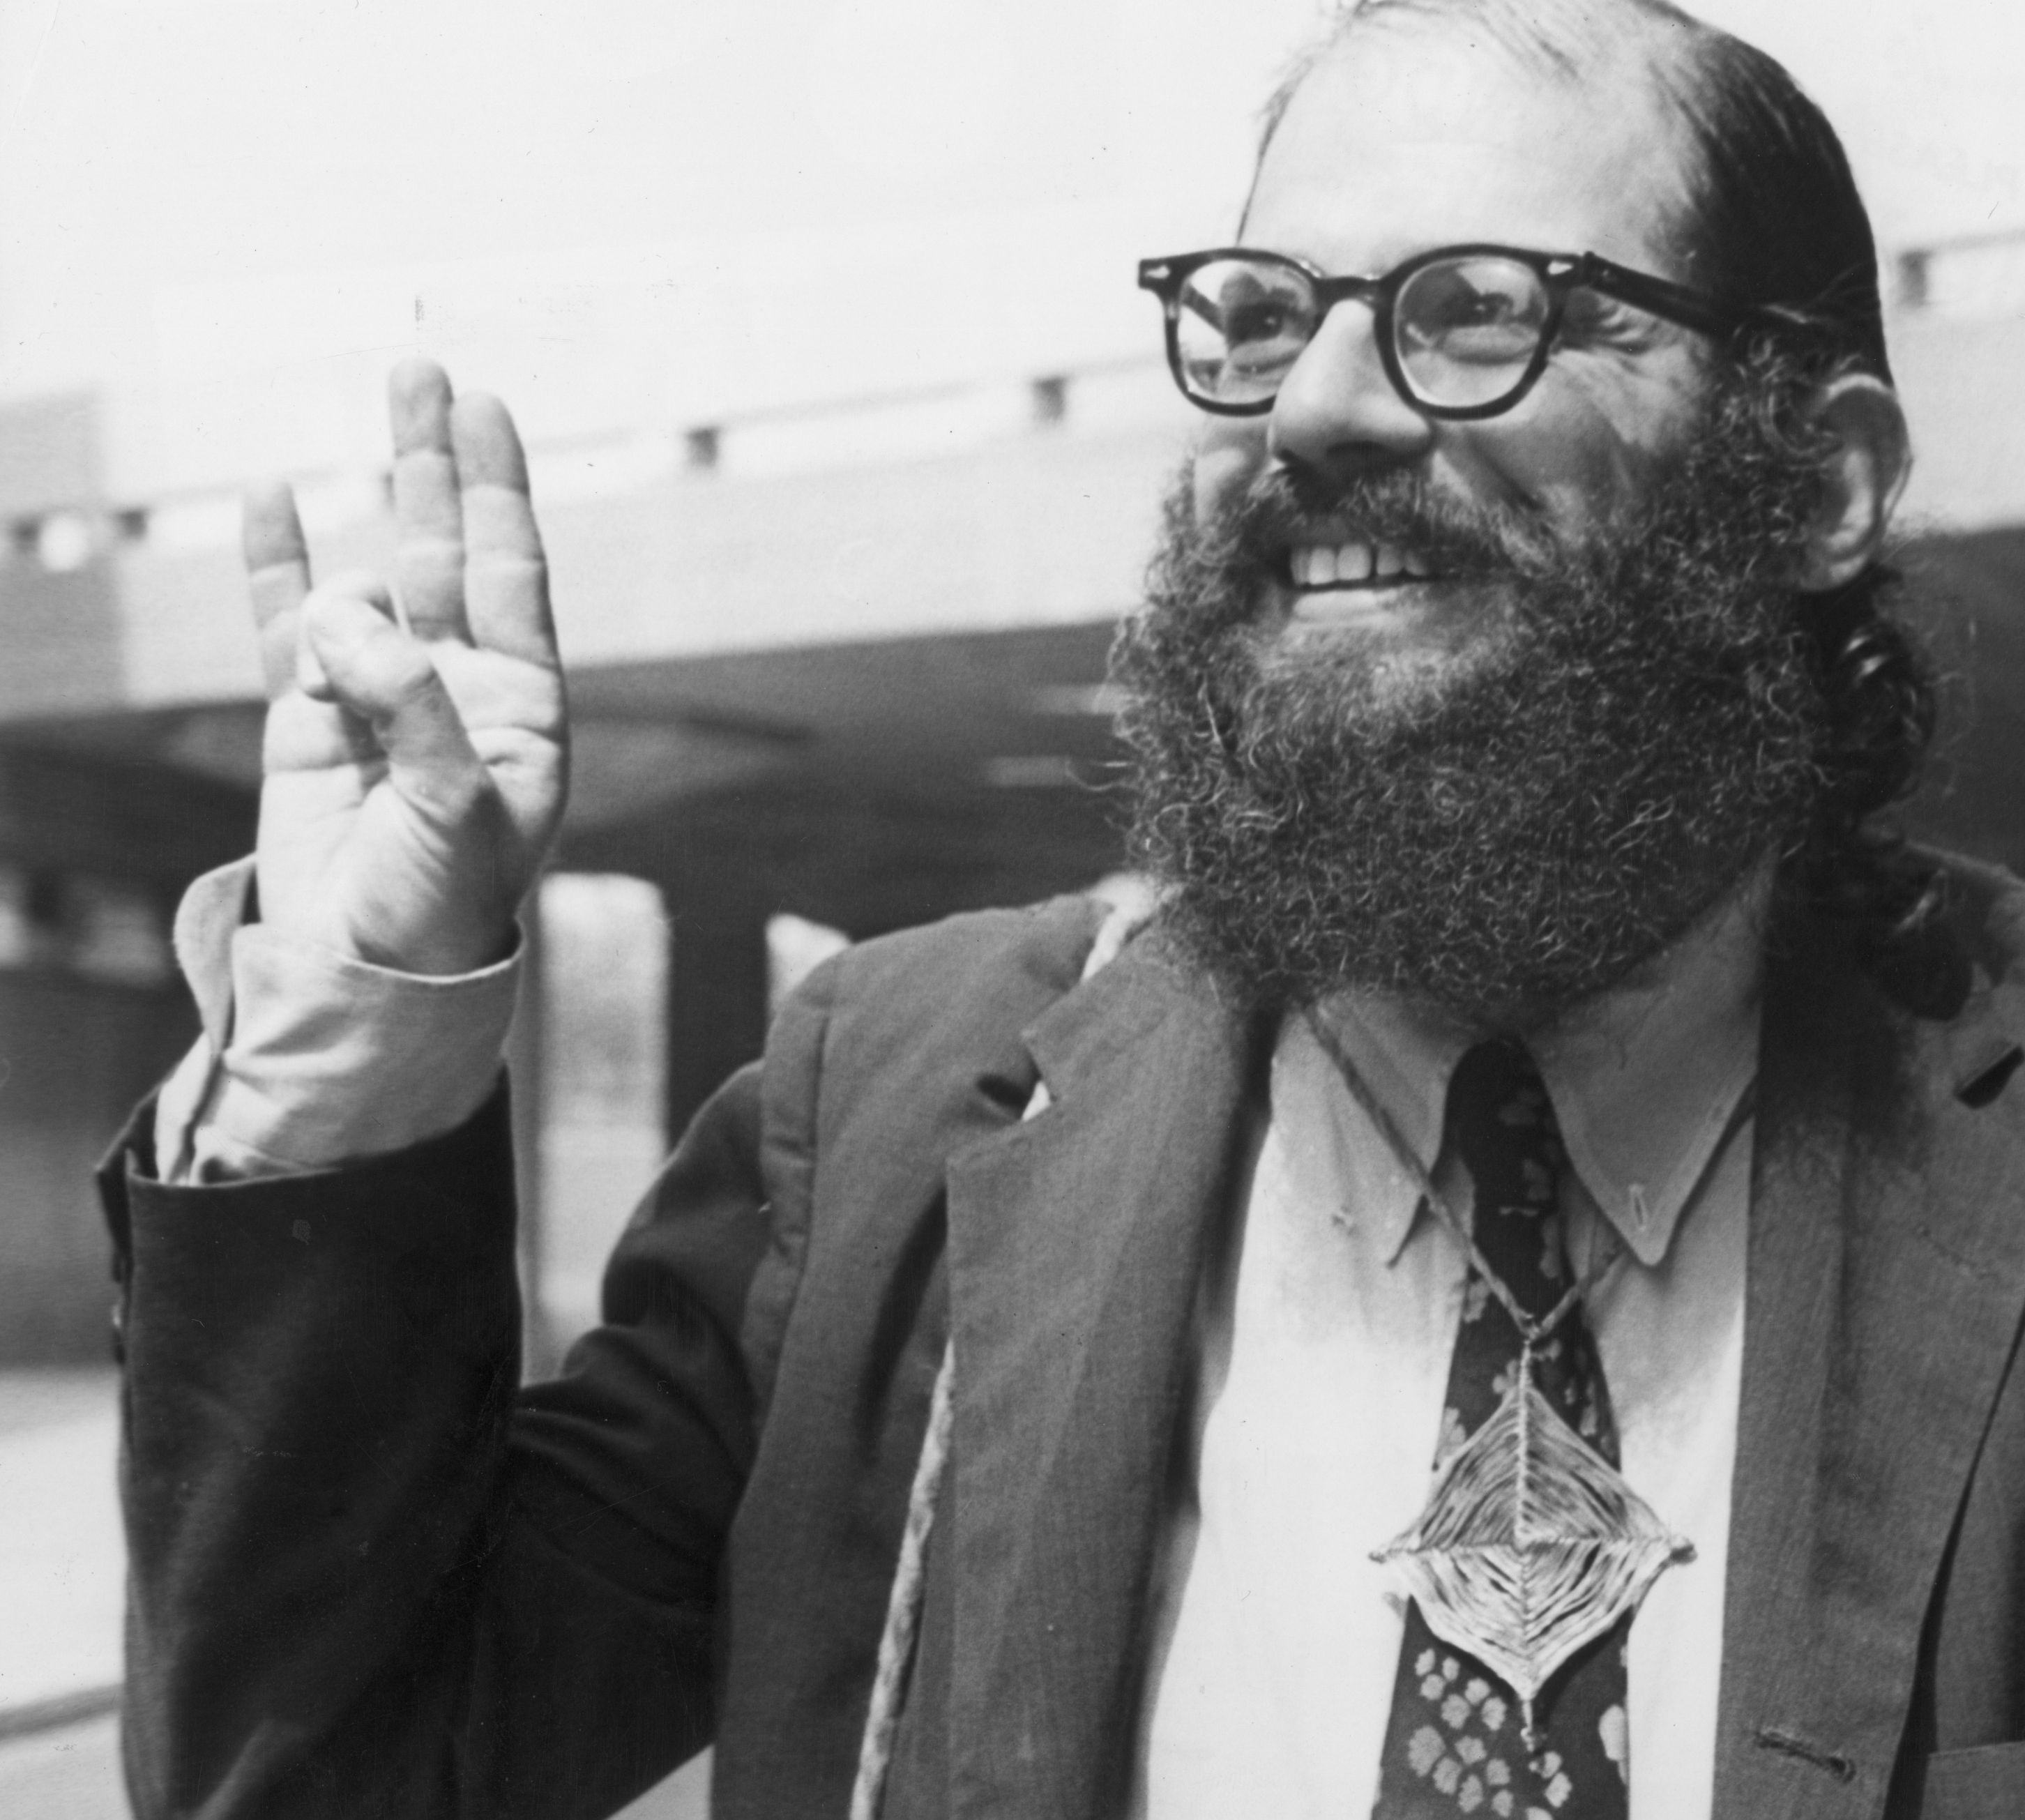 howl by allen ginsberg attack post war conformity Howl by allen ginsburg howl is a poem written by allen ginsberg in 1955, published as part of his 1956 collection of poetry titled howl and other poems, and dedicated to carl solomon.